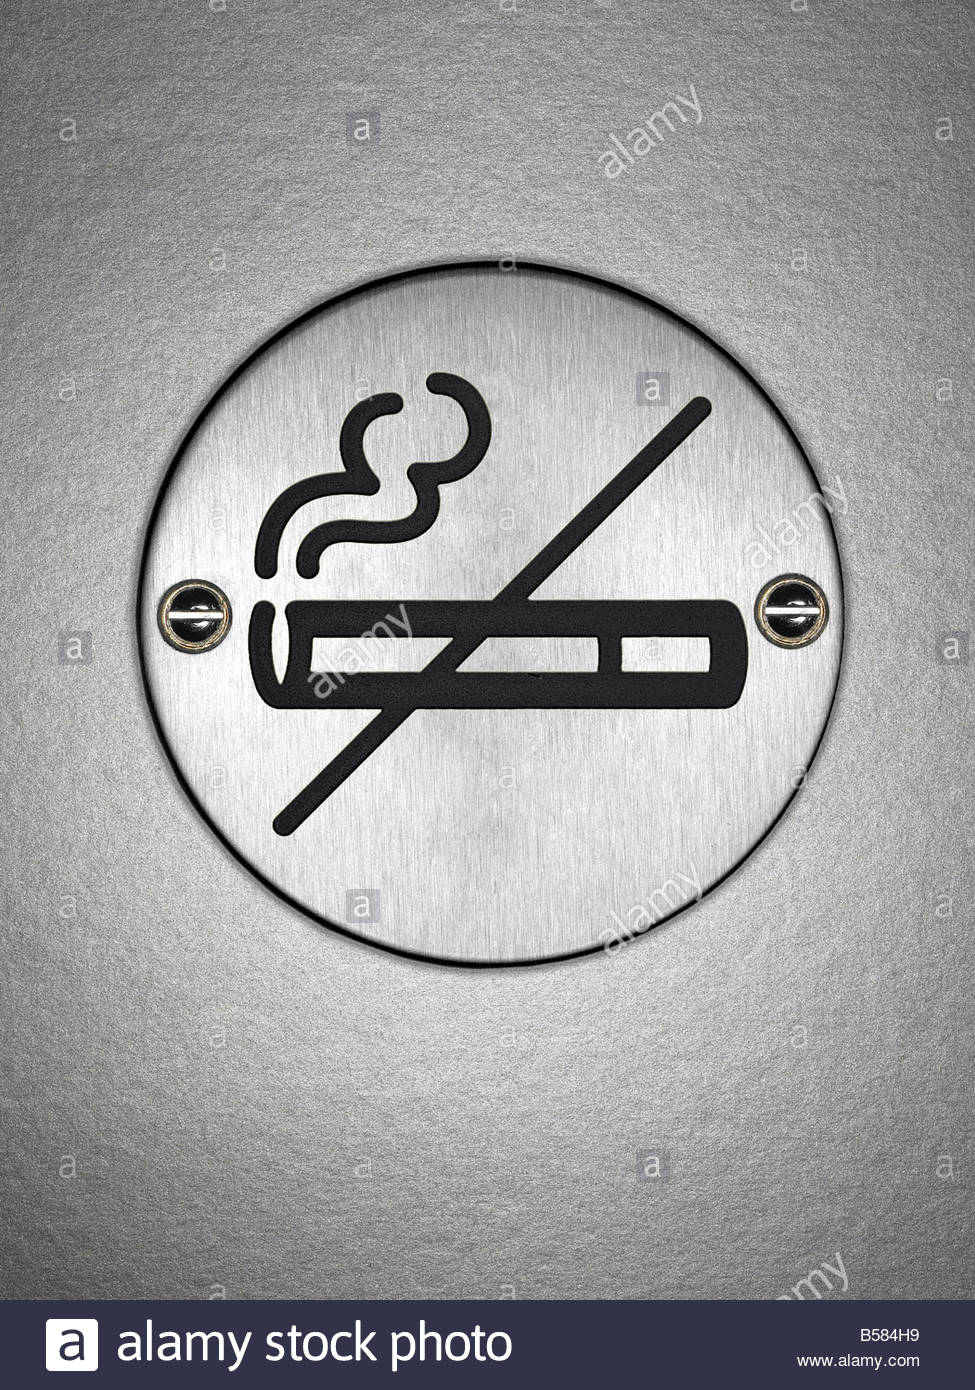 No smoking symbol stock photo royalty free image 20462885 alamy no smoking symbol buycottarizona Images